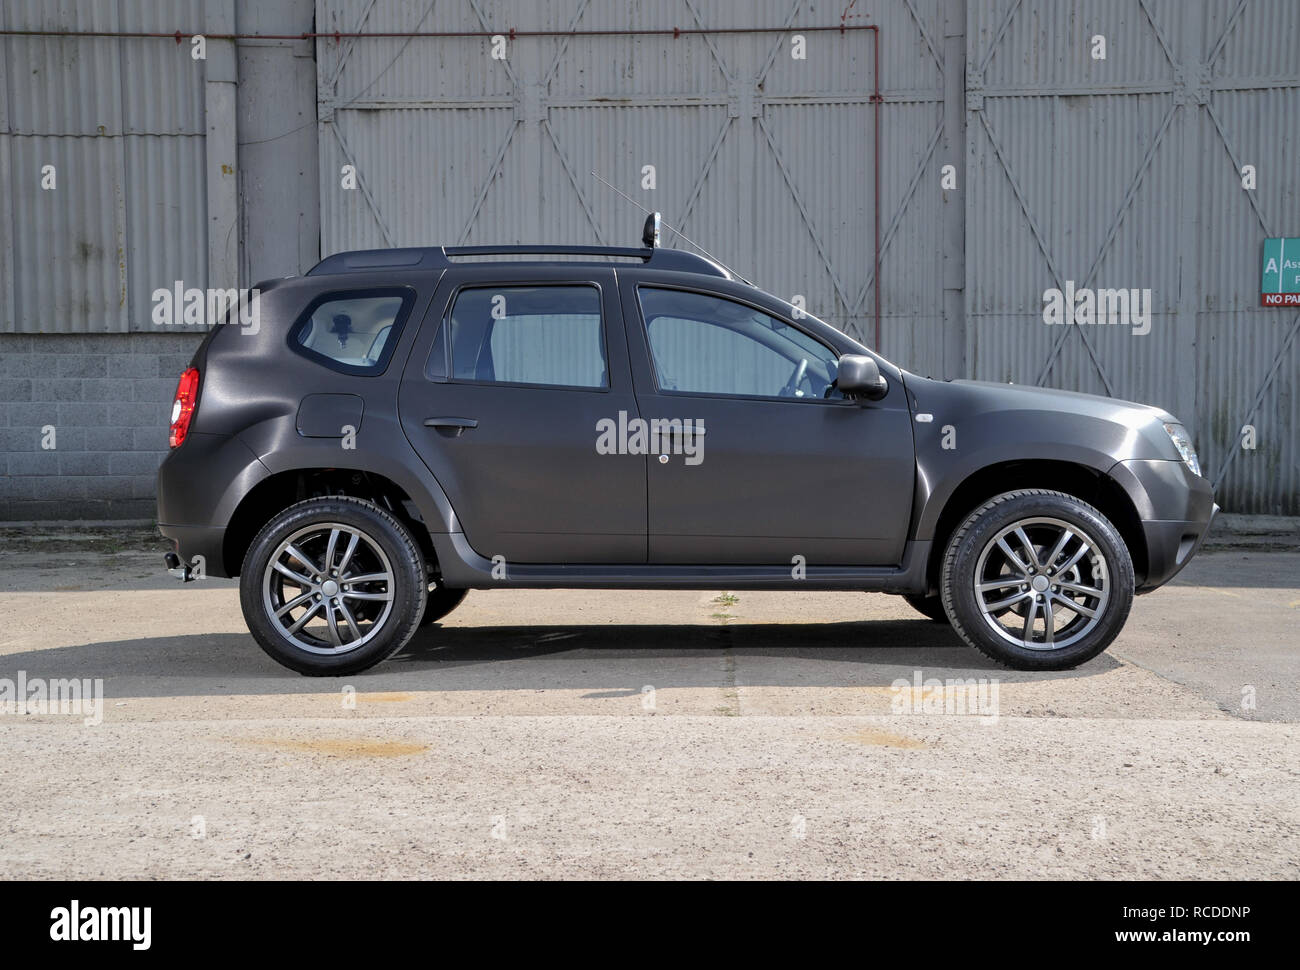 Dacia Duster Car High Resolution Stock Photography And Images Alamy